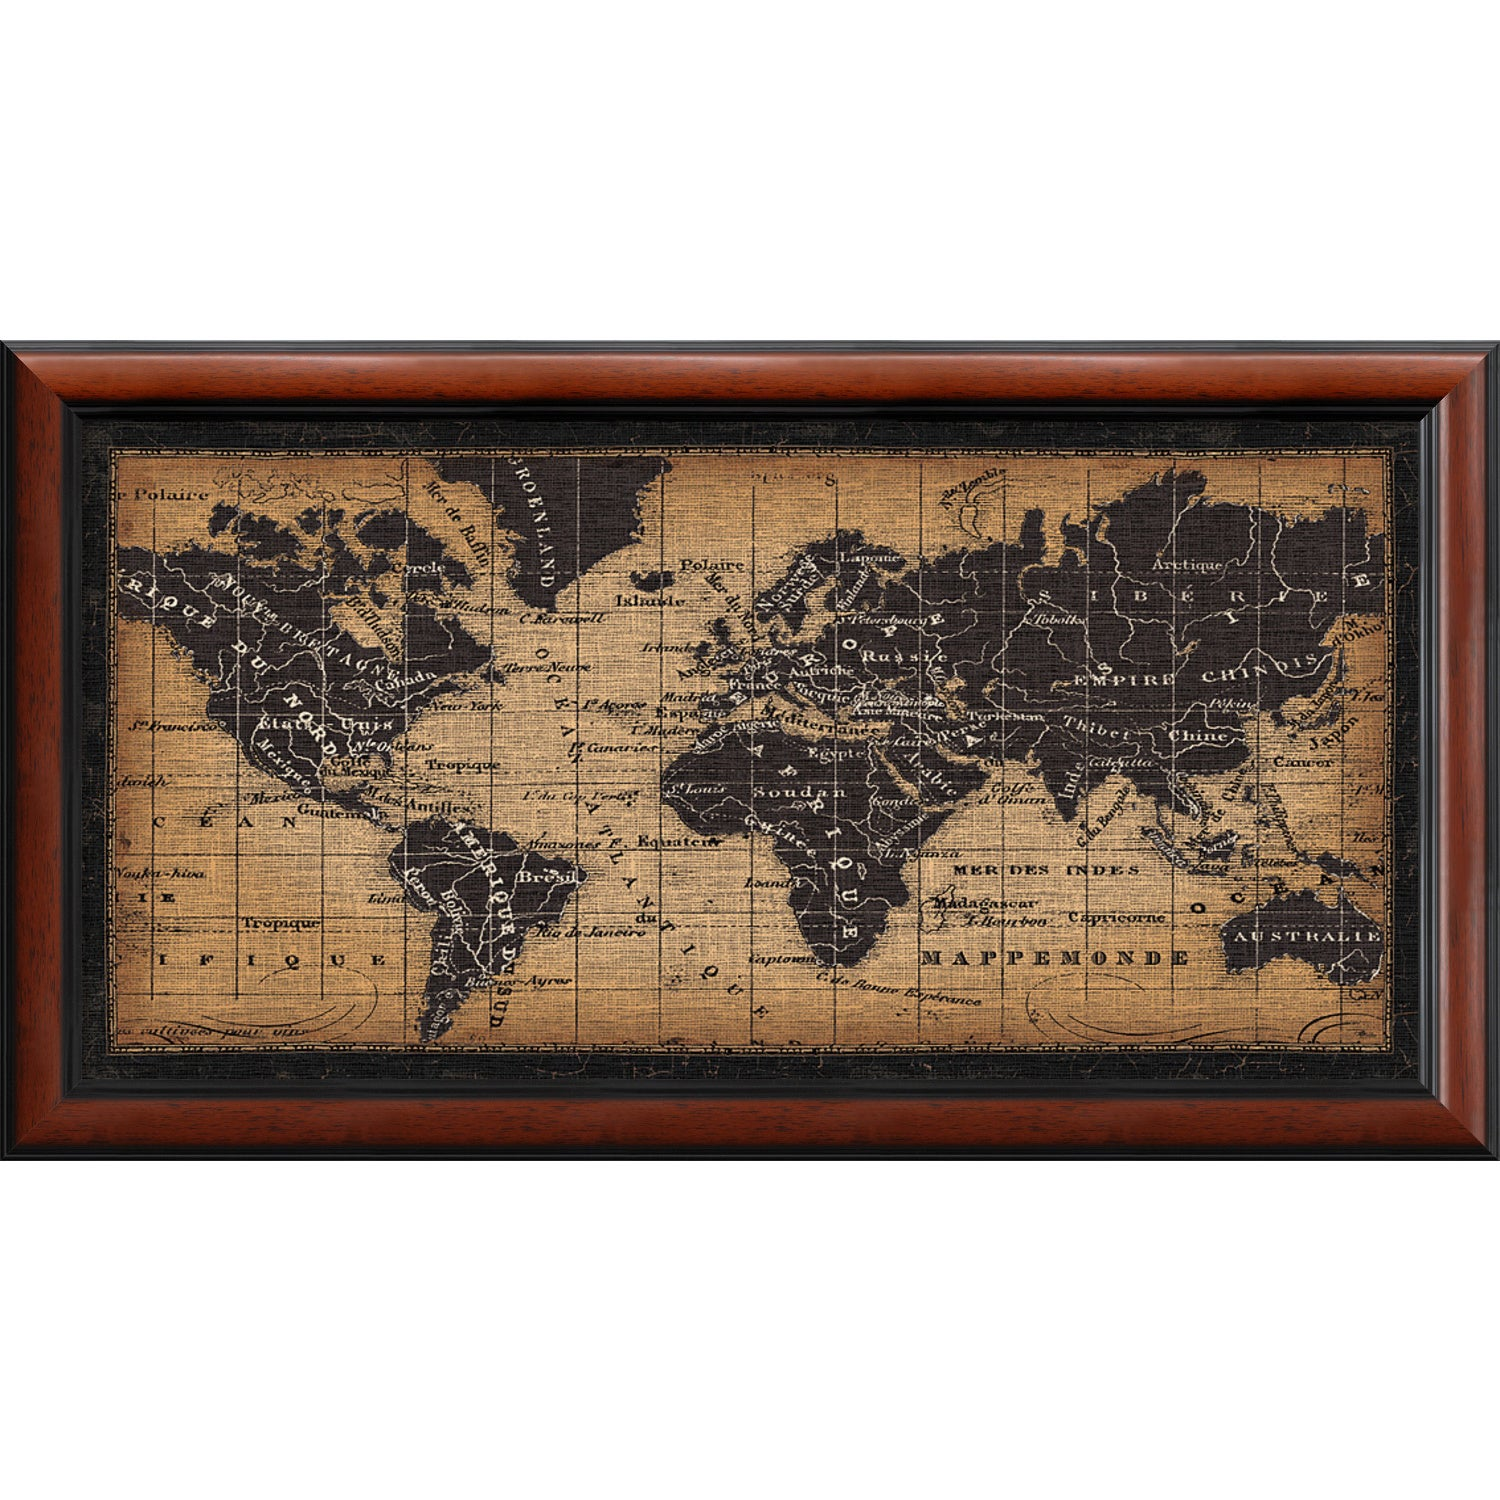 Framed Art Print 'Old World Map' by Pela Studio 44 x 24-inch on print map of argentina, print map of massachusetts, print map of bulgaria, print map of africa, print map of florida, print map of united states, print blank world map, print map of india, print map of armenia, print map of seven continents, print map of europe, print map of london, print map of jamaica, print map of new zealand, print map of france, print map of central america, google maps of world, print map of ethiopia, print map of usa, print map of denmark,